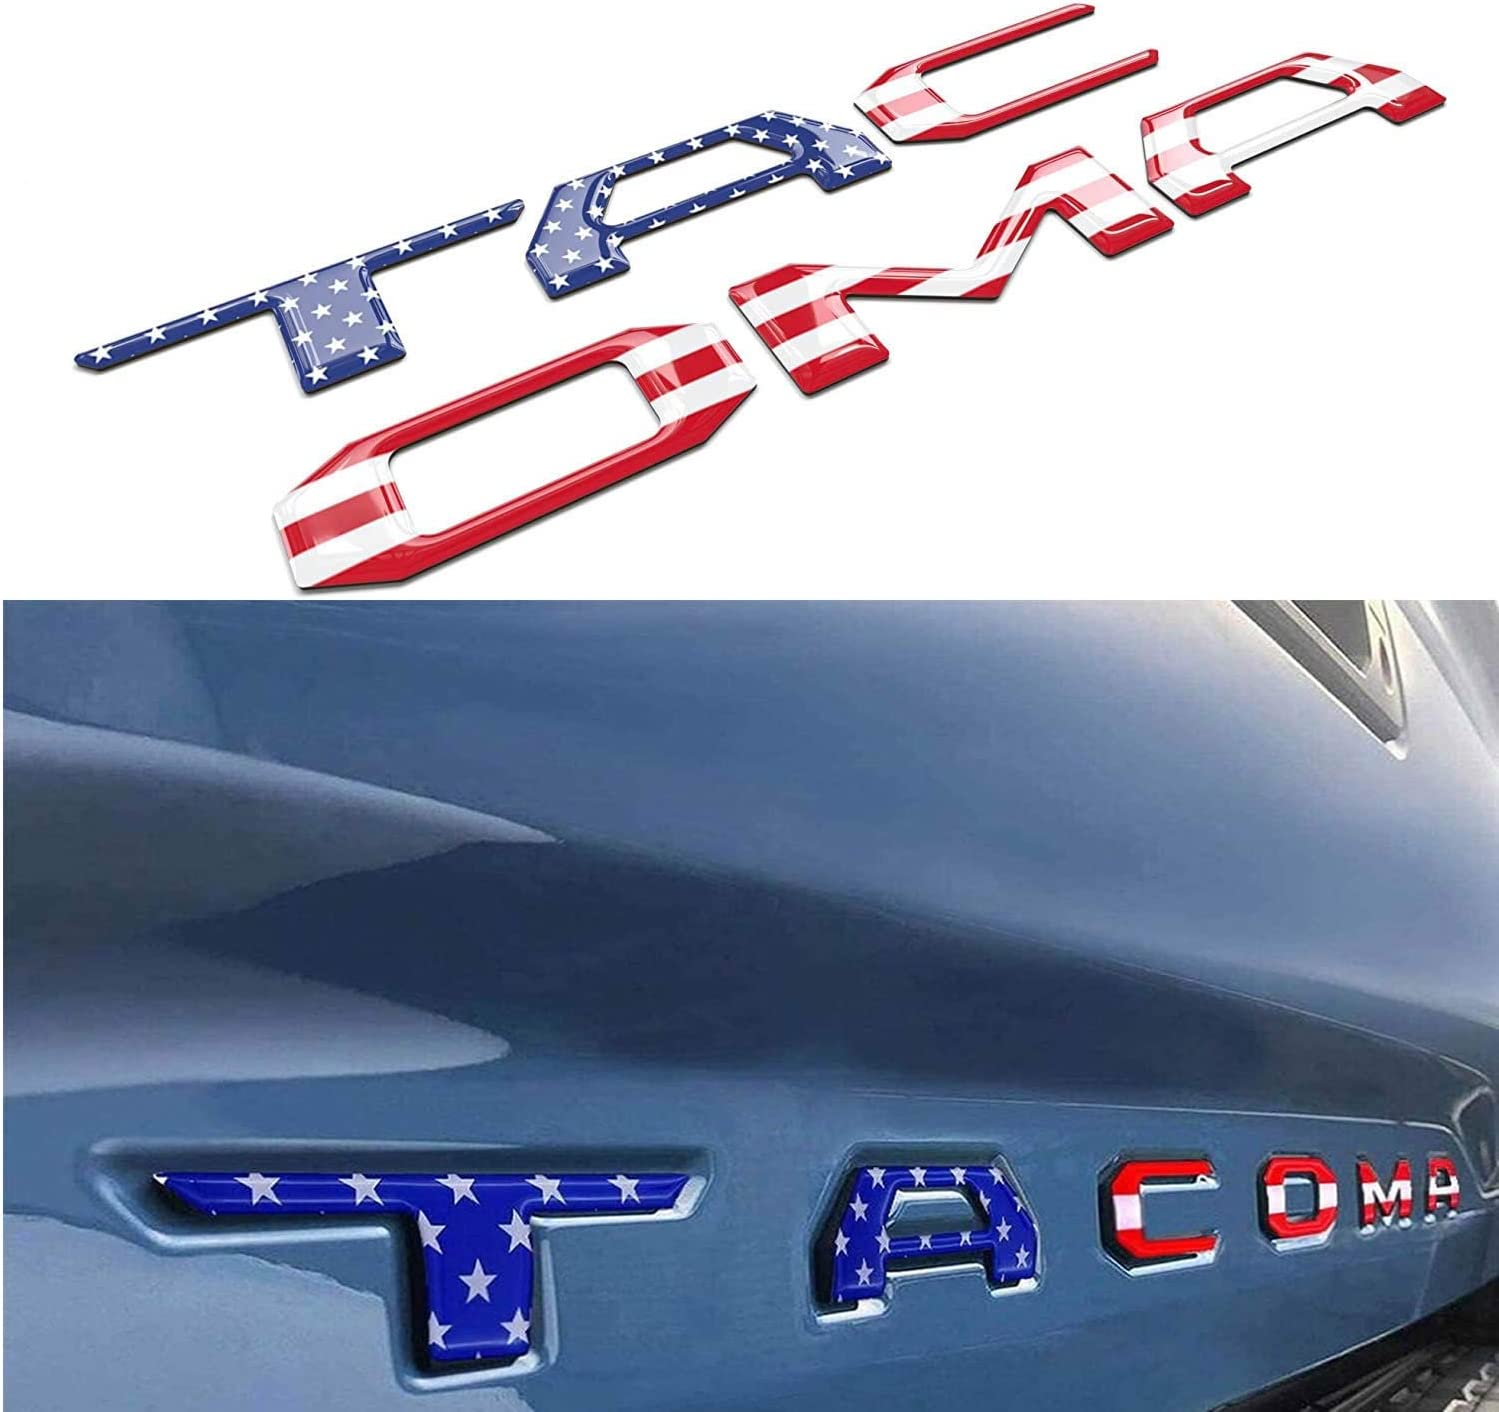 Domed 3D Raised Tailgate Letters Flag Reflective Emblem Decals Compatible with 2016-2020 Tacoma Models